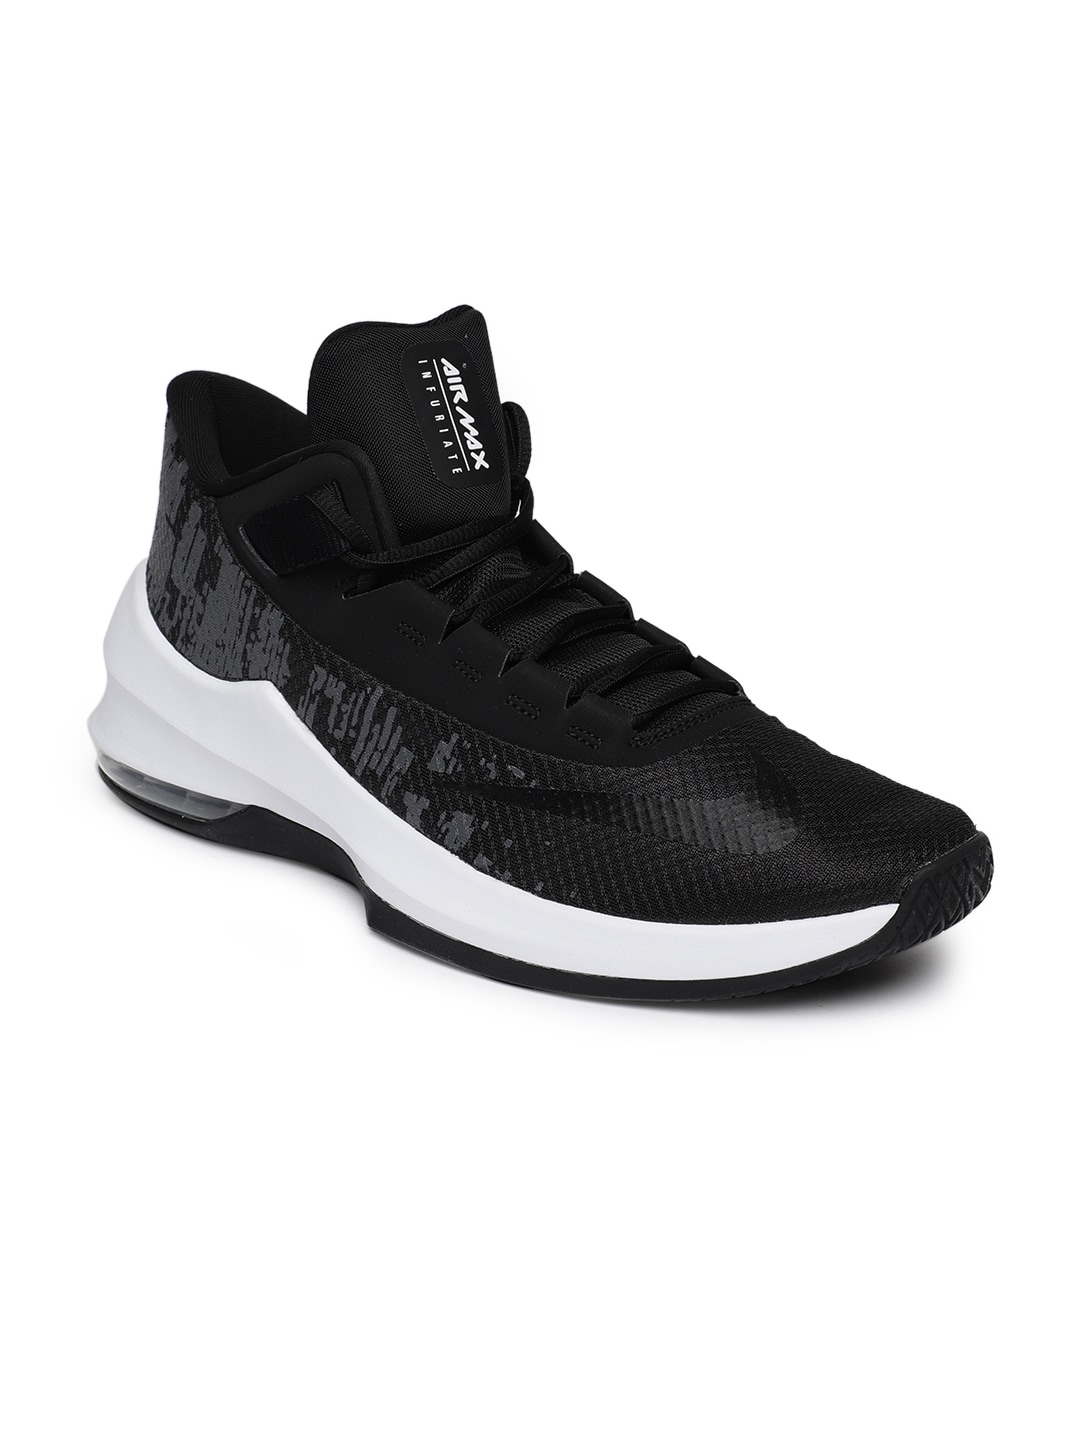 new product eaea8 d1f91 Nike Air Max - Buy Nike Air Max Shoes, Bags, Sneakers in India